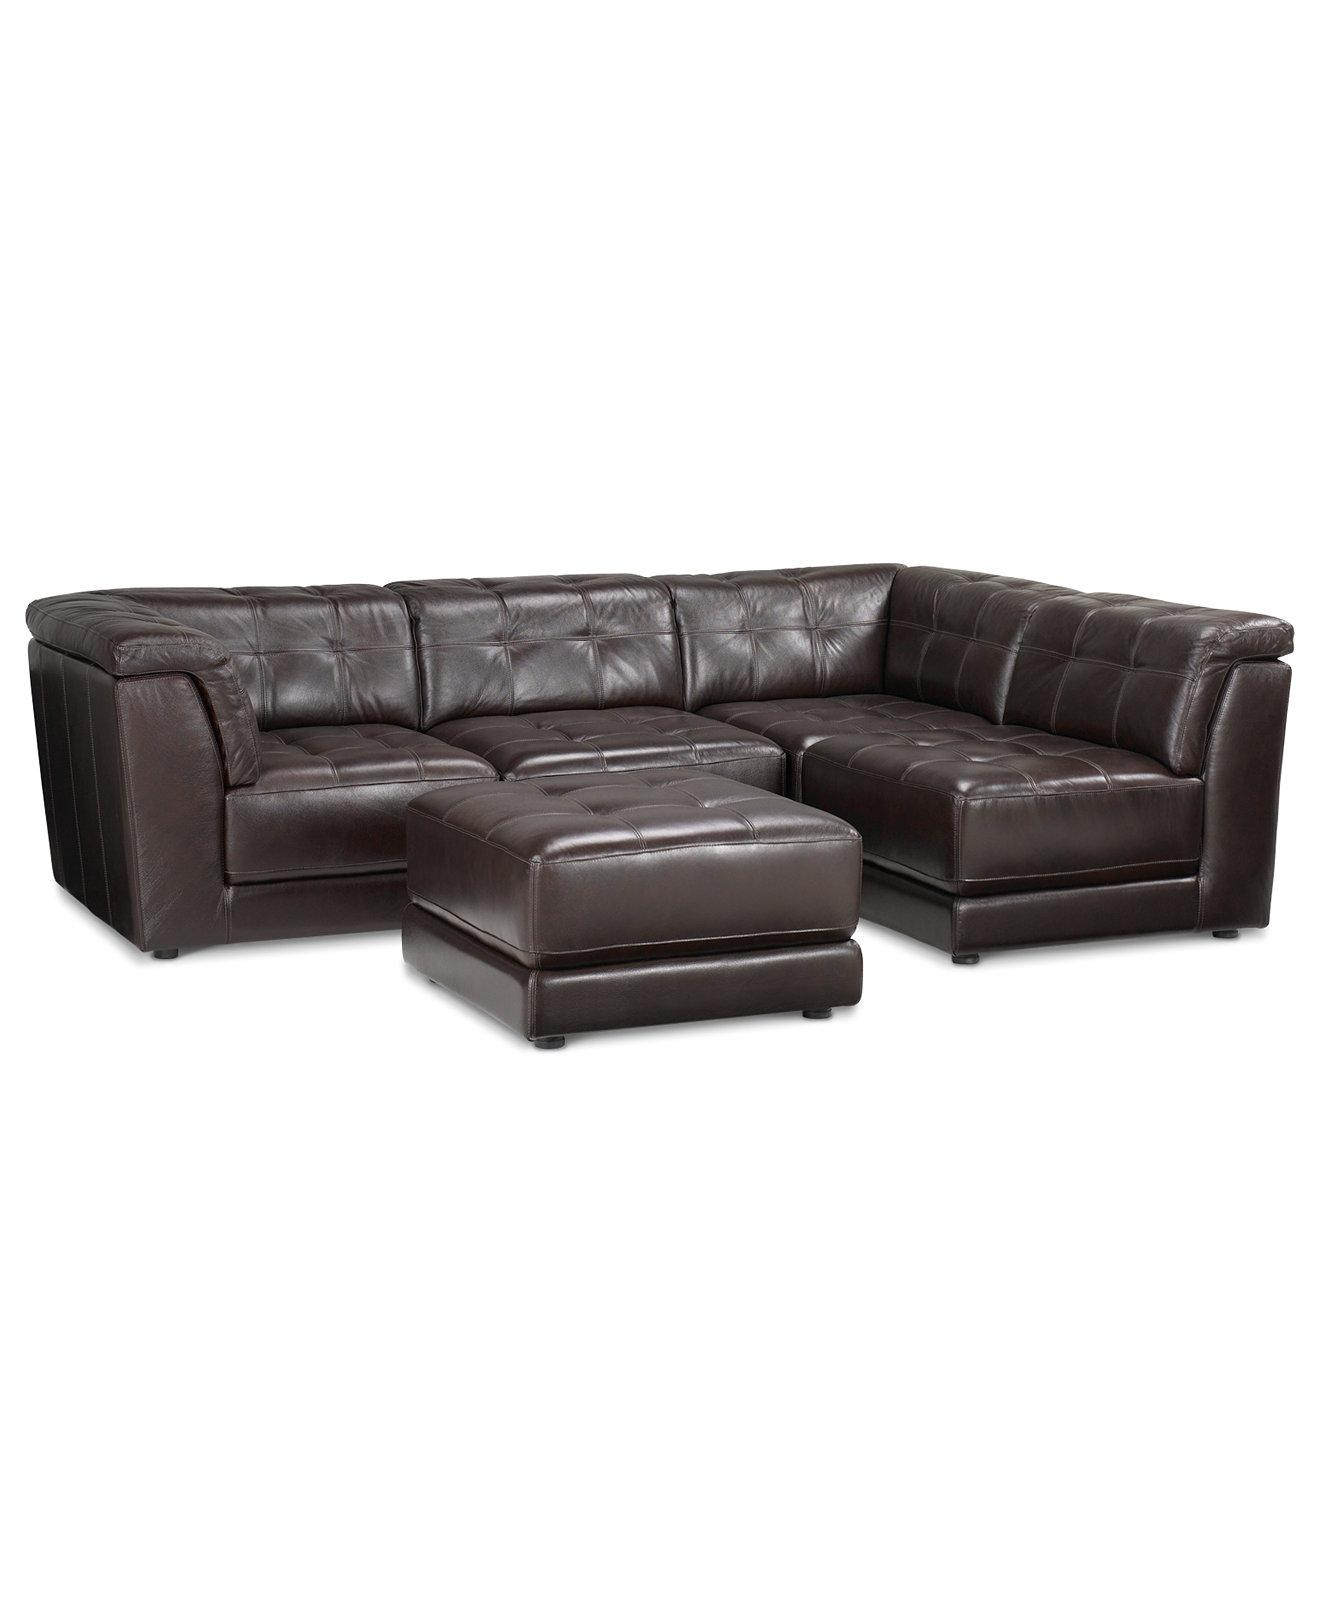 Sofas: Elegant Living Room Sofas Designmacys Sectional Sofa Throughout Macys Leather Sectional Sofa (Image 14 of 20)